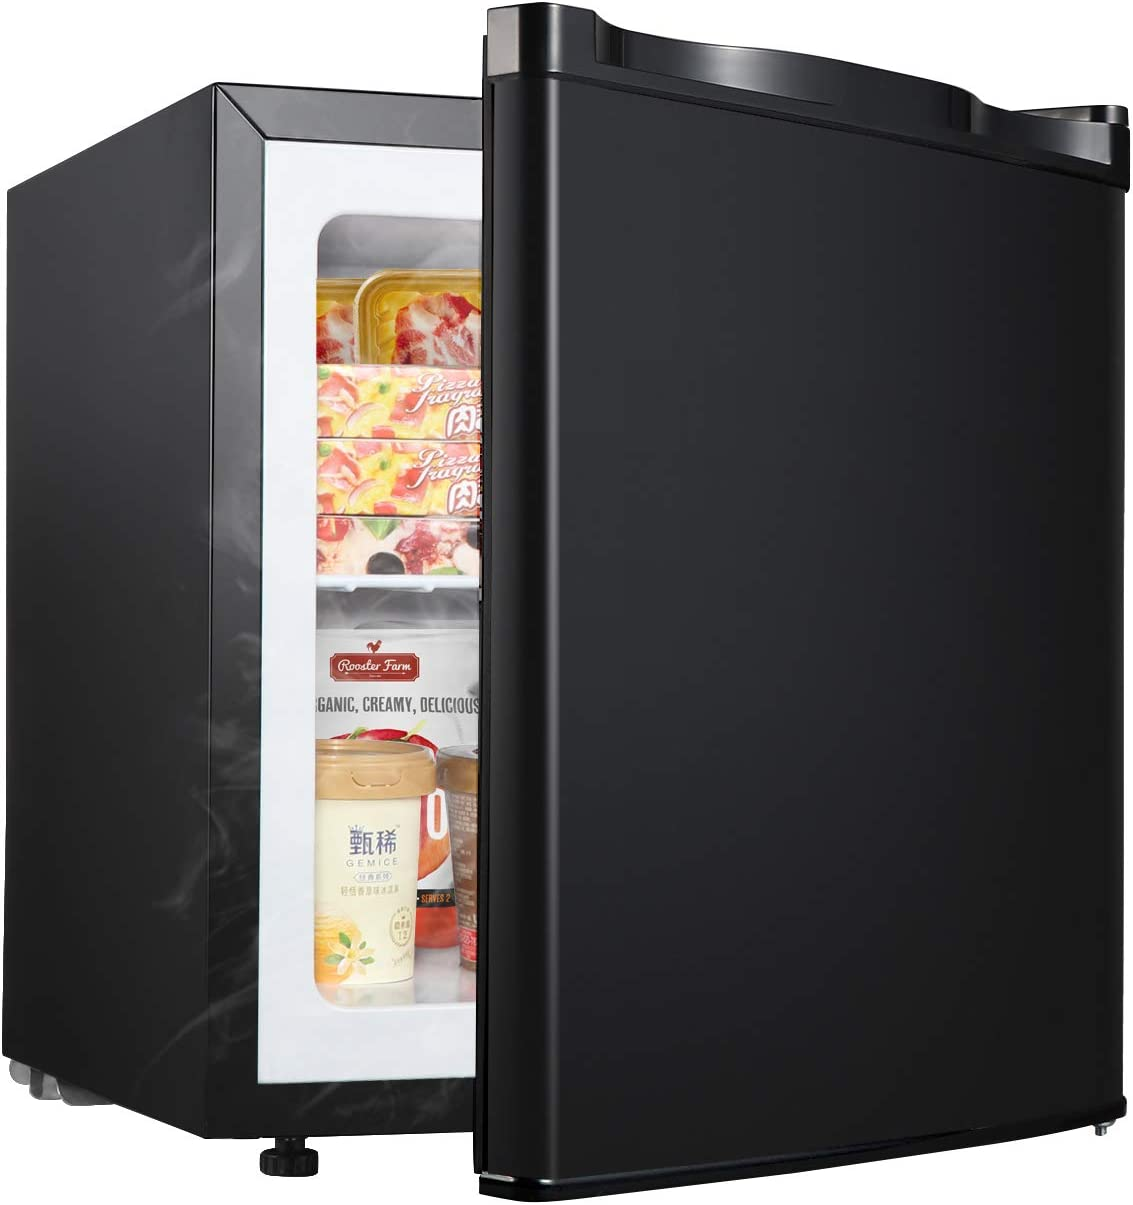 WANAI Upright Freezer 1.1 Cubic Feet Compact Single Door Vertical Freezer Table Top Mini Freezing Machine with Removable Shelves for Office Dorm or Apartment